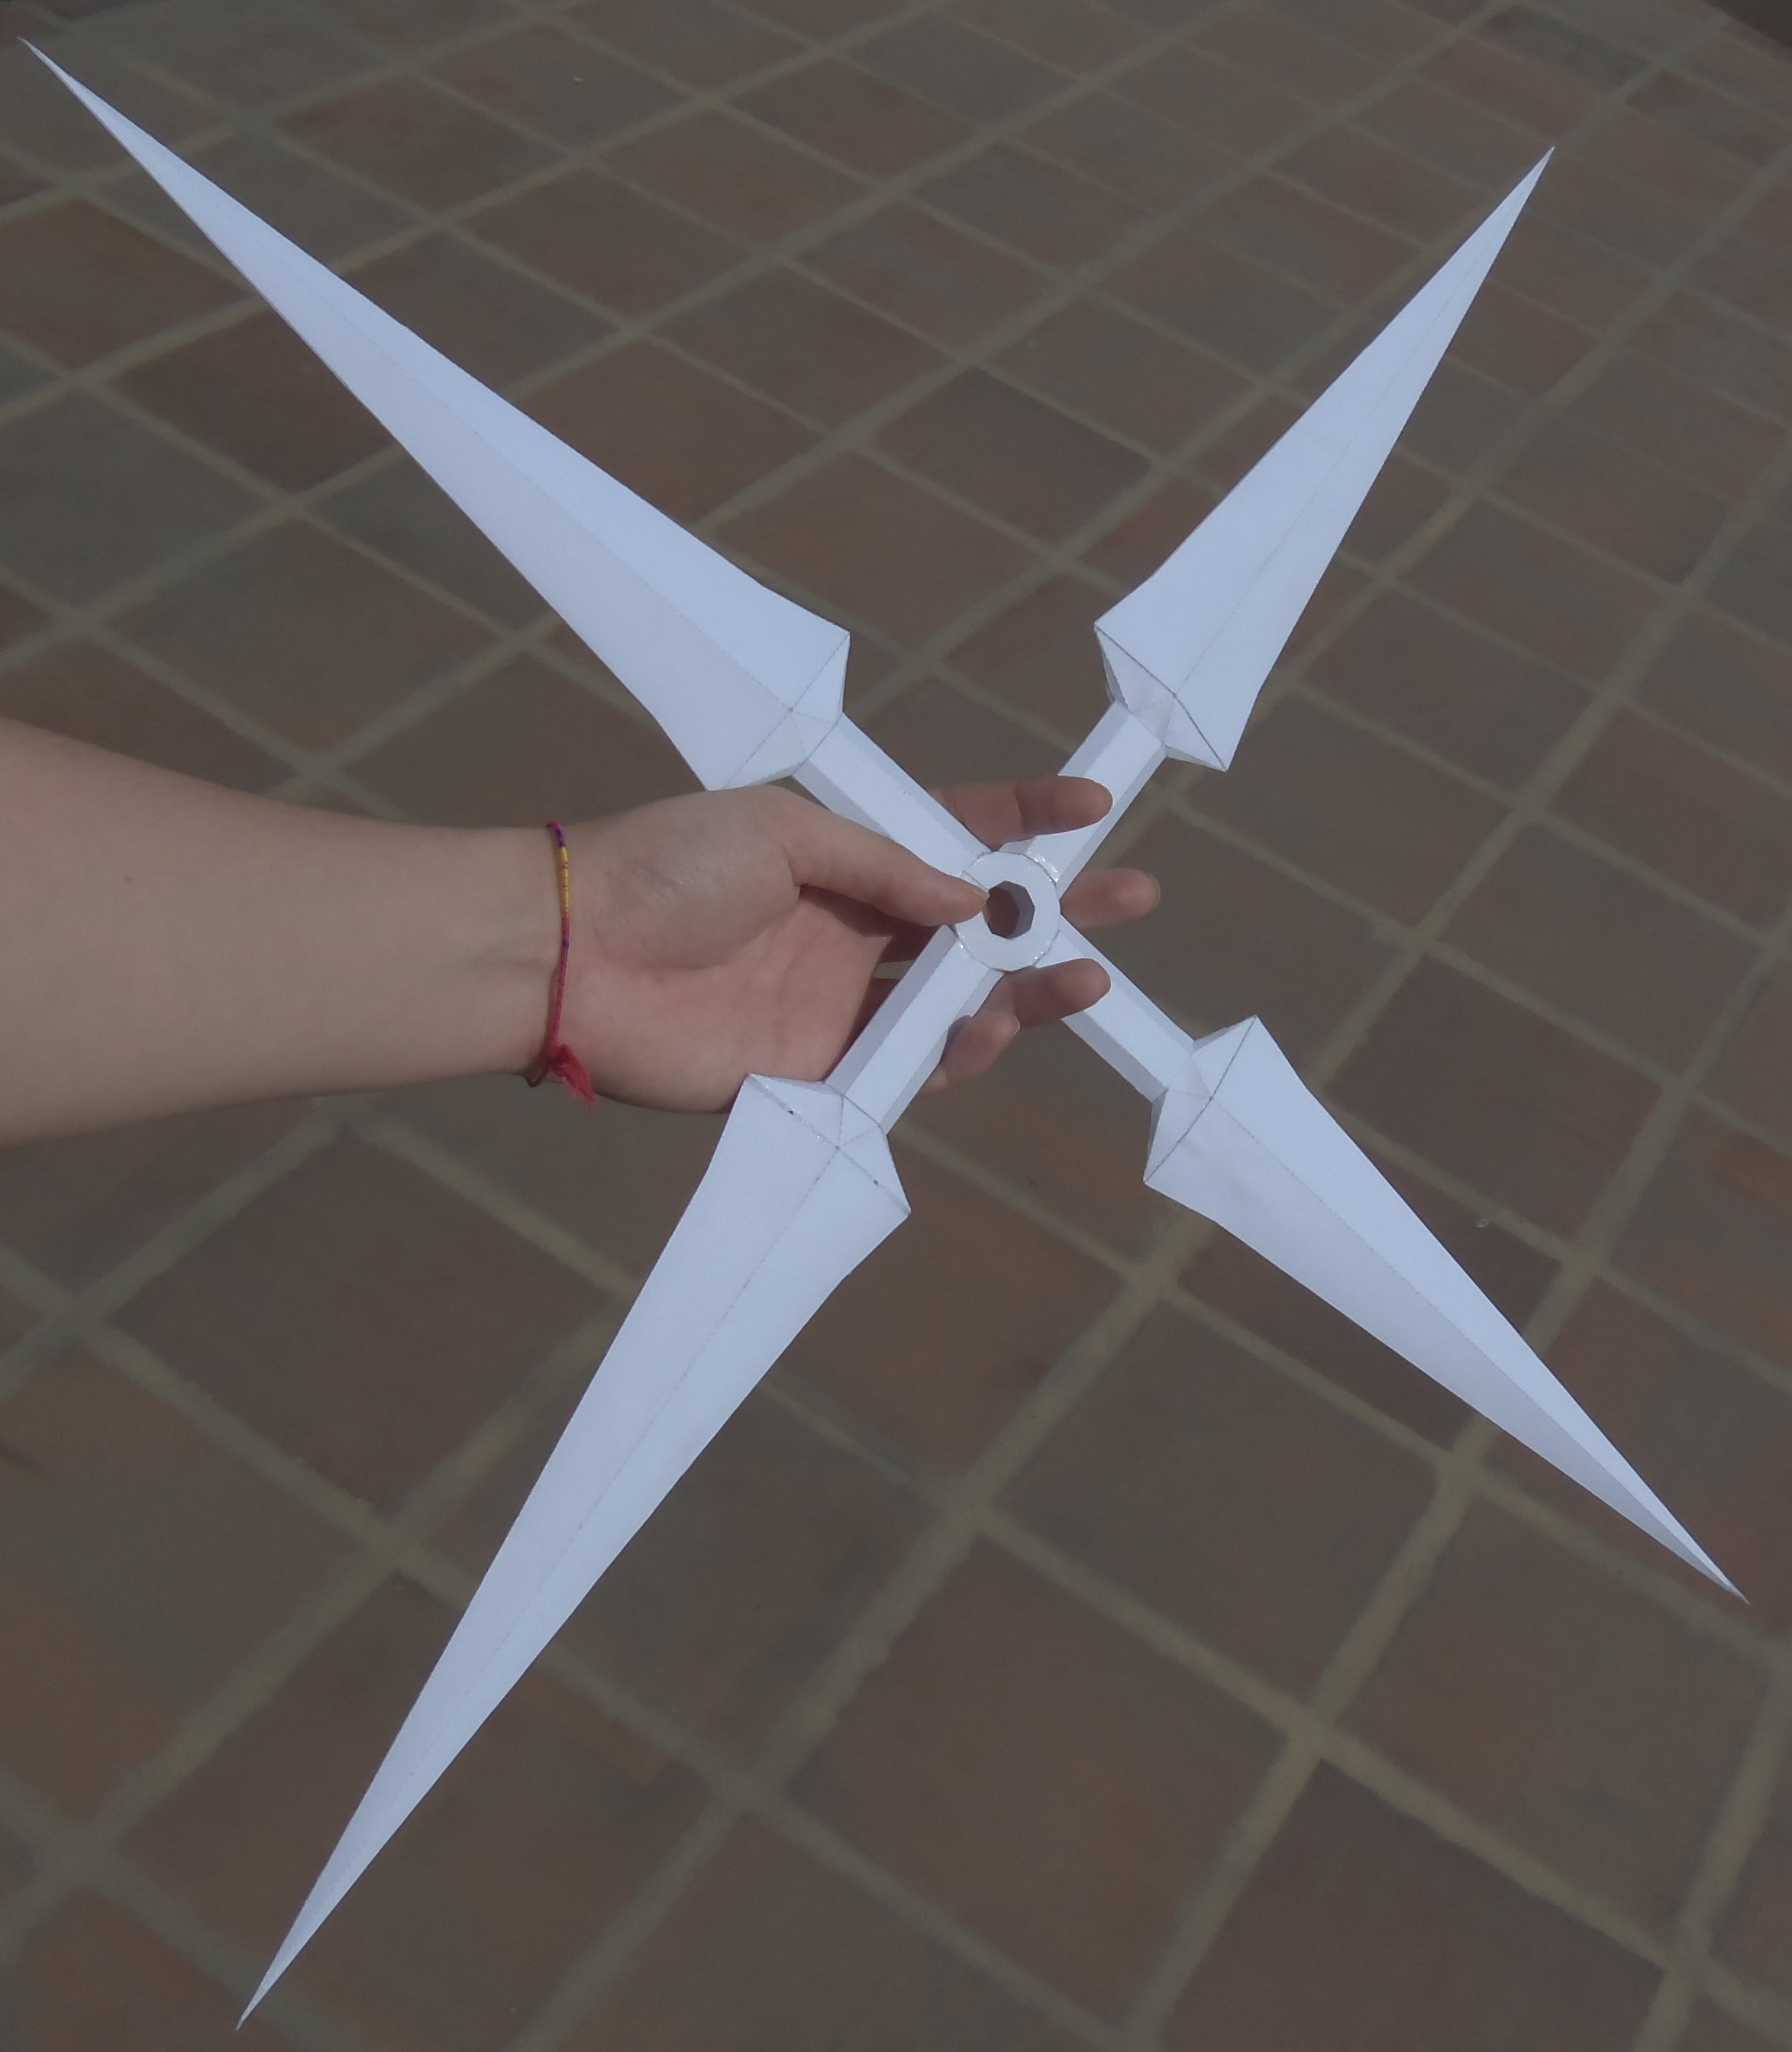 paper ninja weapons To make a ninja sword, get a thick, straight stick that's 1-2 feet long next, use a knife to remove any bark from the stick and carve a handle and a pointed tip into the wood once you have a rough shape, use sandpaper to make small adjustments.